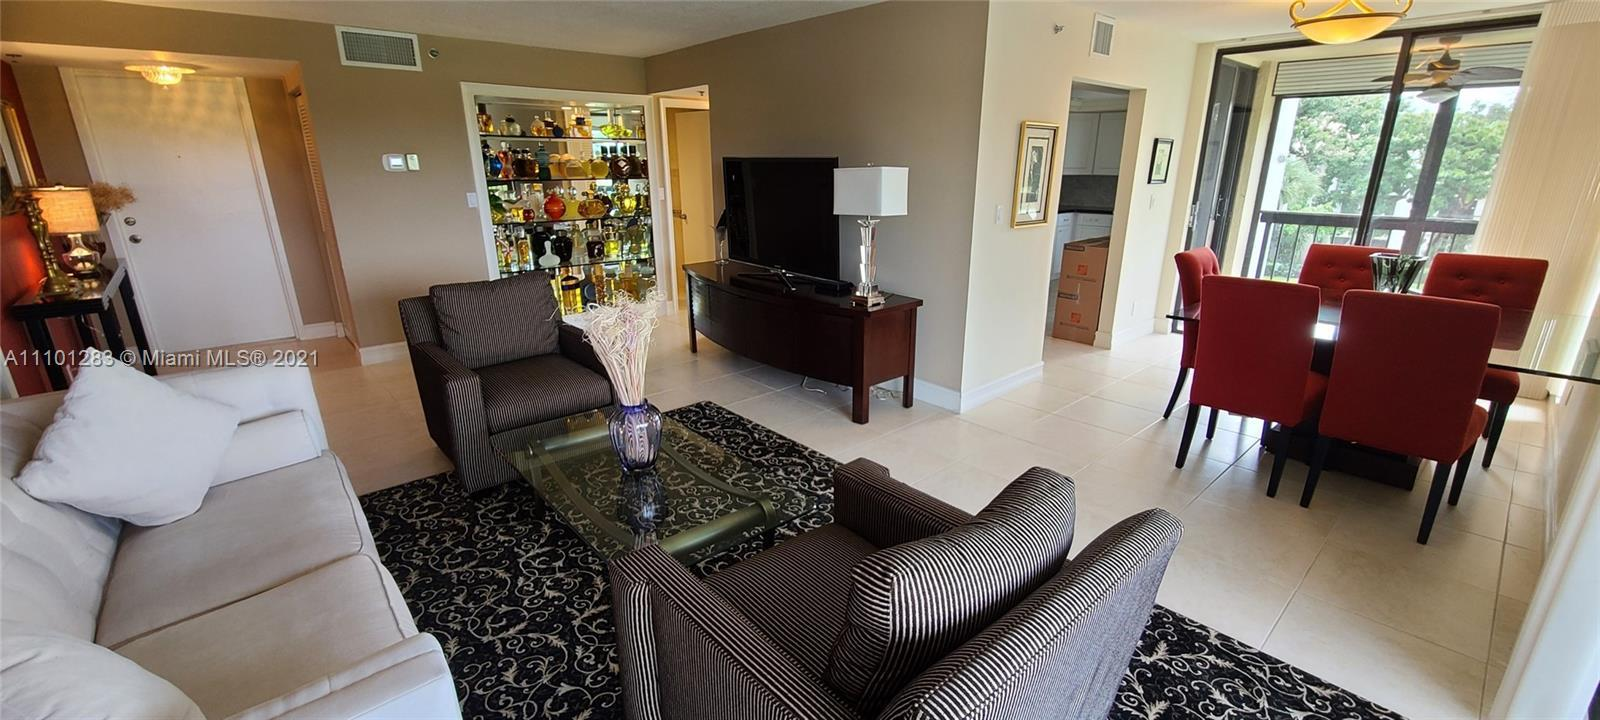 Fabulous opportunity to live in Boca West country club community. Beautiful 2 bedroom 2 bathroom cor